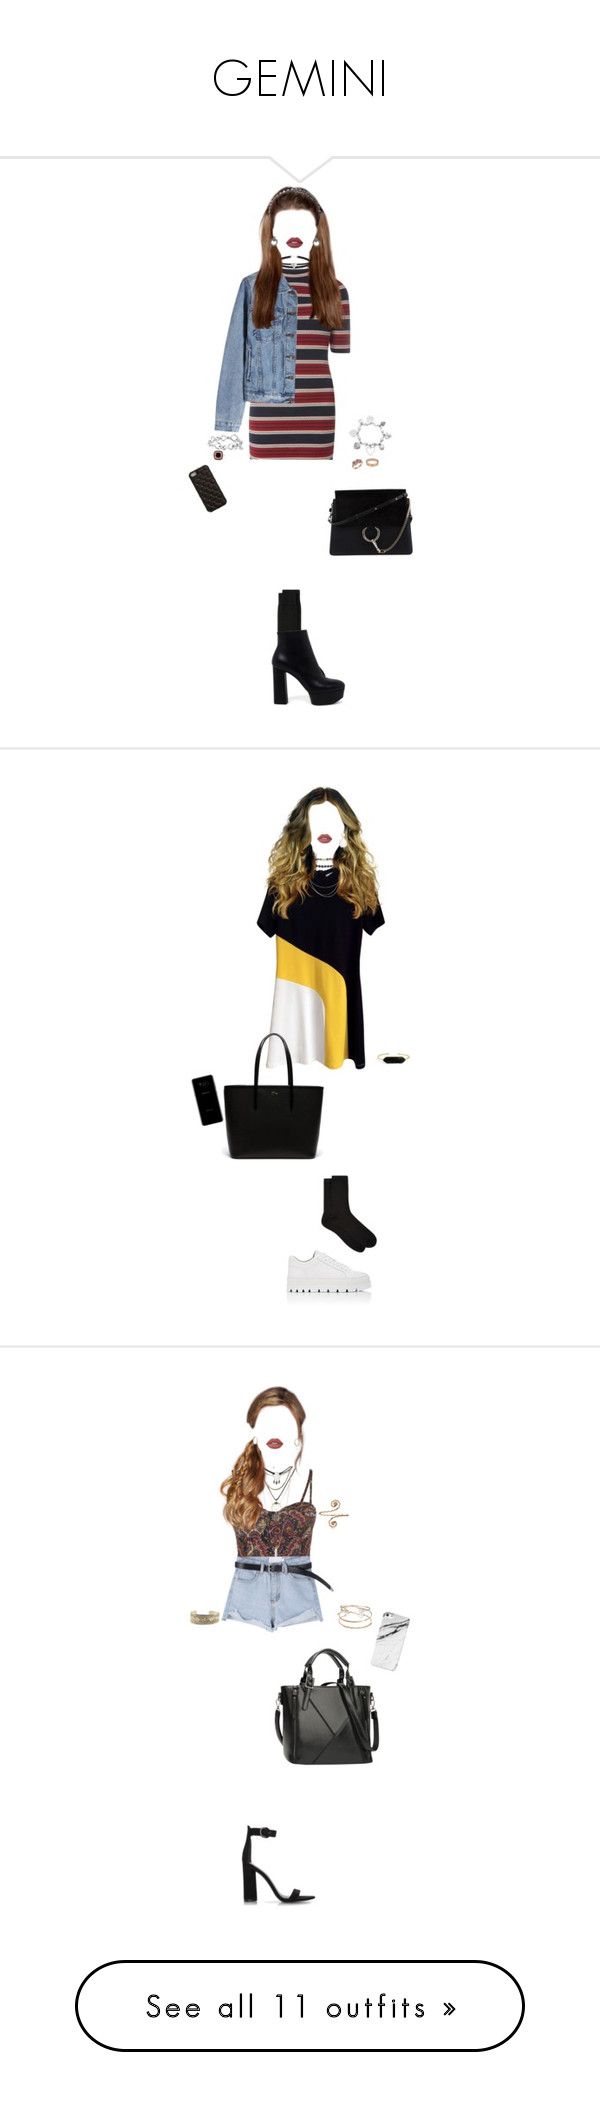 """""""GEMINI"""" by xxeucliffexx ❤ liked on Polyvore featuring Dorothy Perkins, GANT, Casadei, Forever 21, Lime Crime, Effy Jewelry, Cartier, David Yurman, ChloBo and Chloé"""